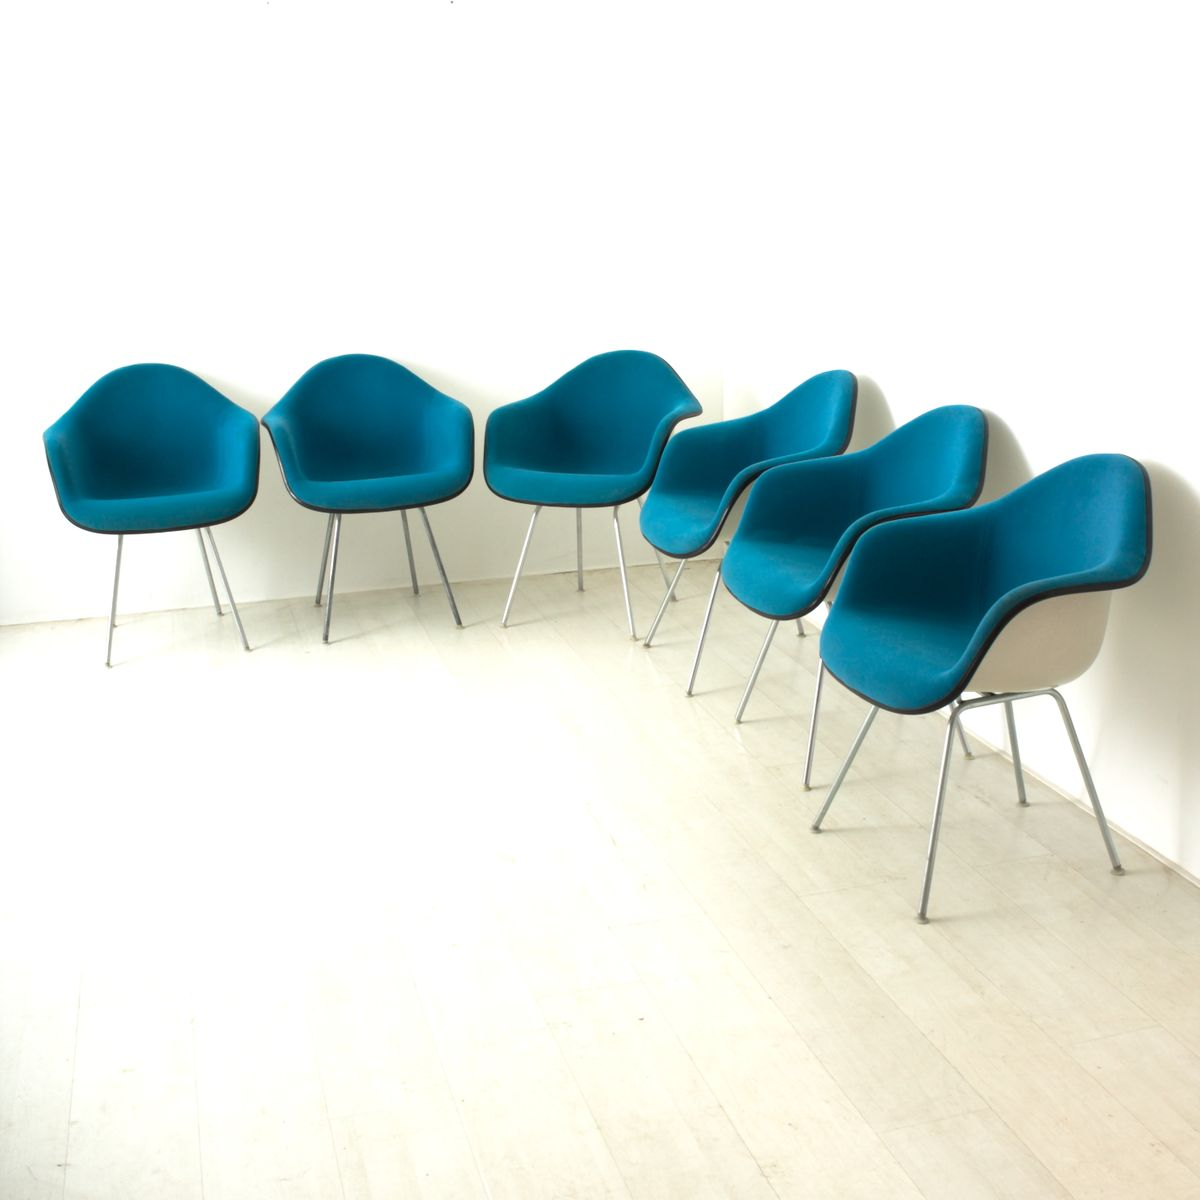 Teal Armchair By Charles Eames For Vitra 1960 For Sale At